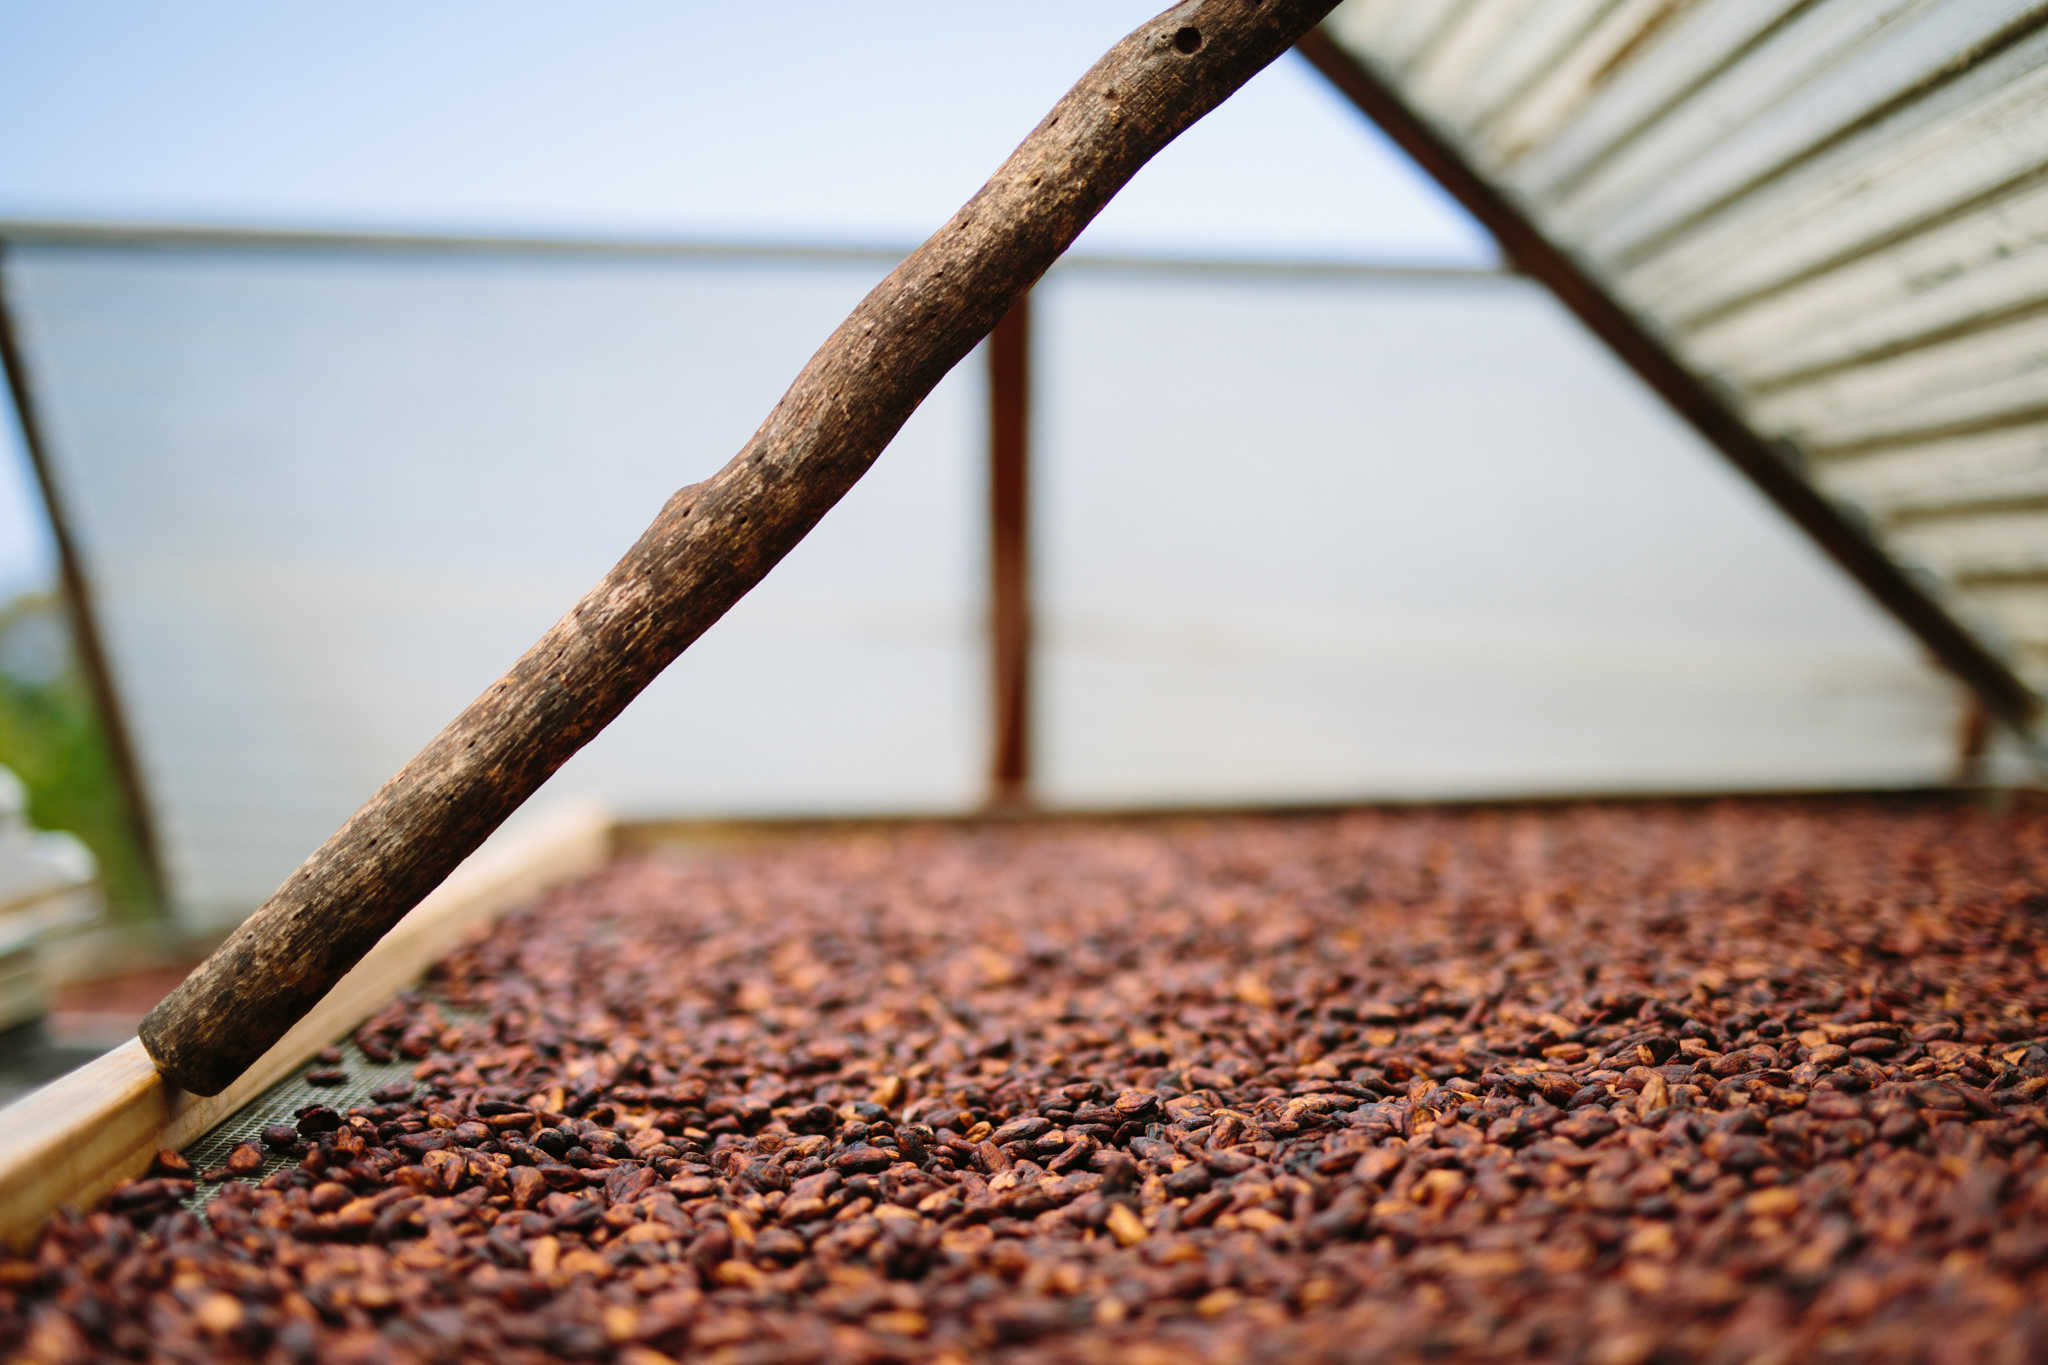 Drying cacao beans! They reek when they're fermenting, but at the drying stage they smell delicious.